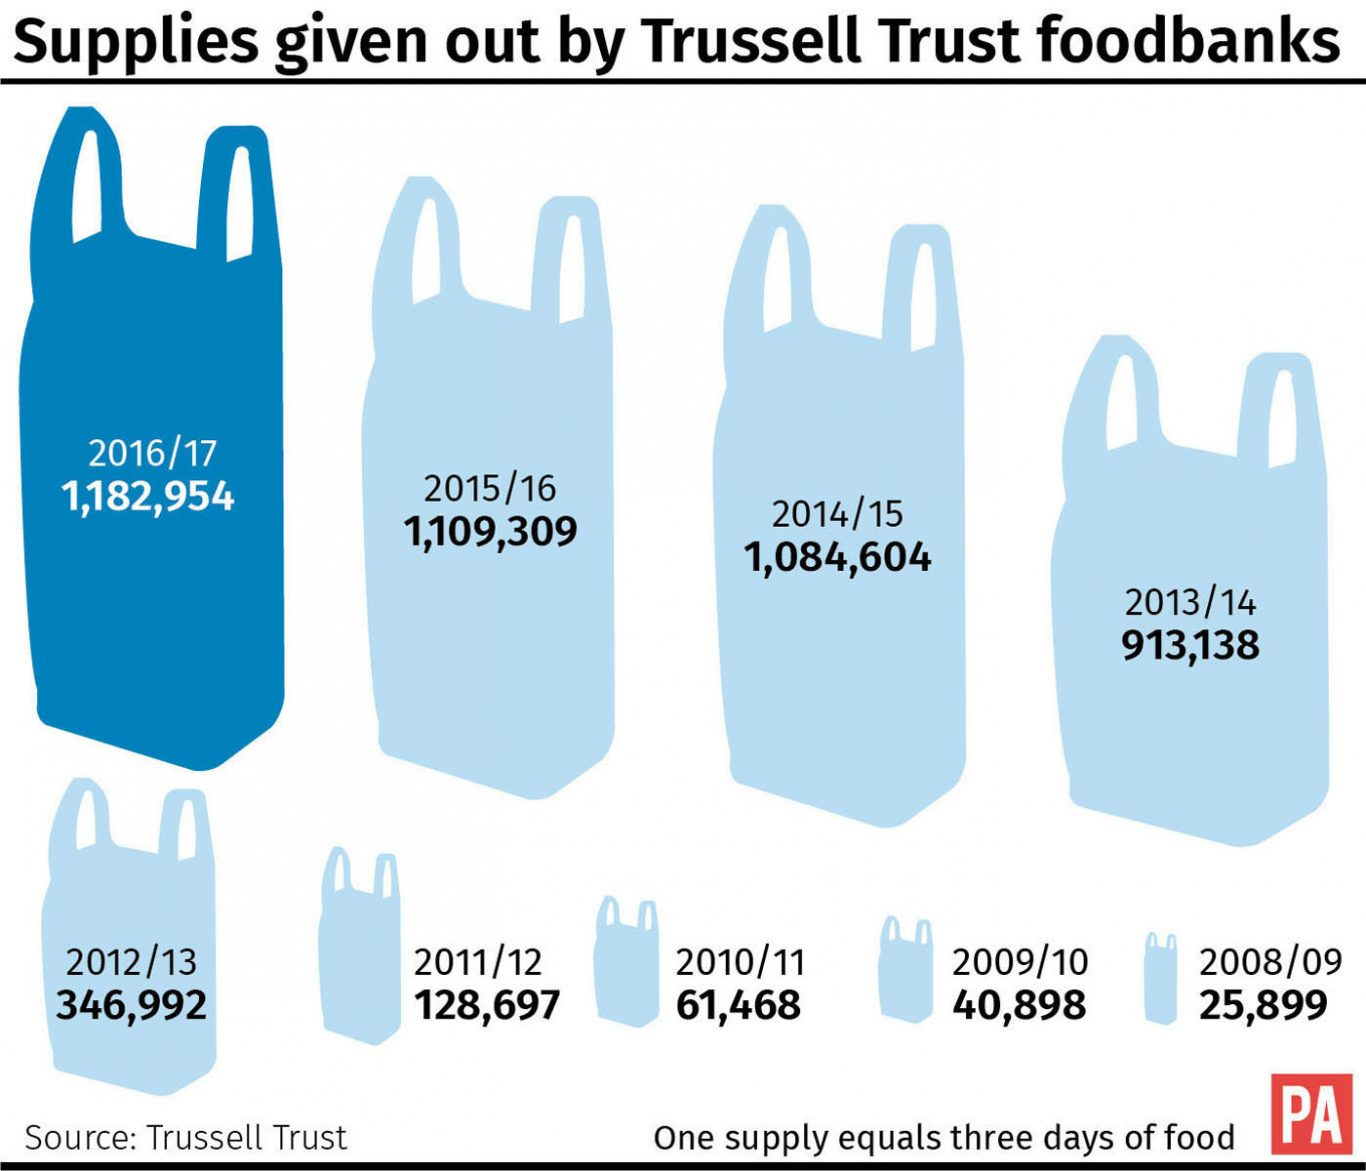 Supplies given out by Trussell Trust foodbanks